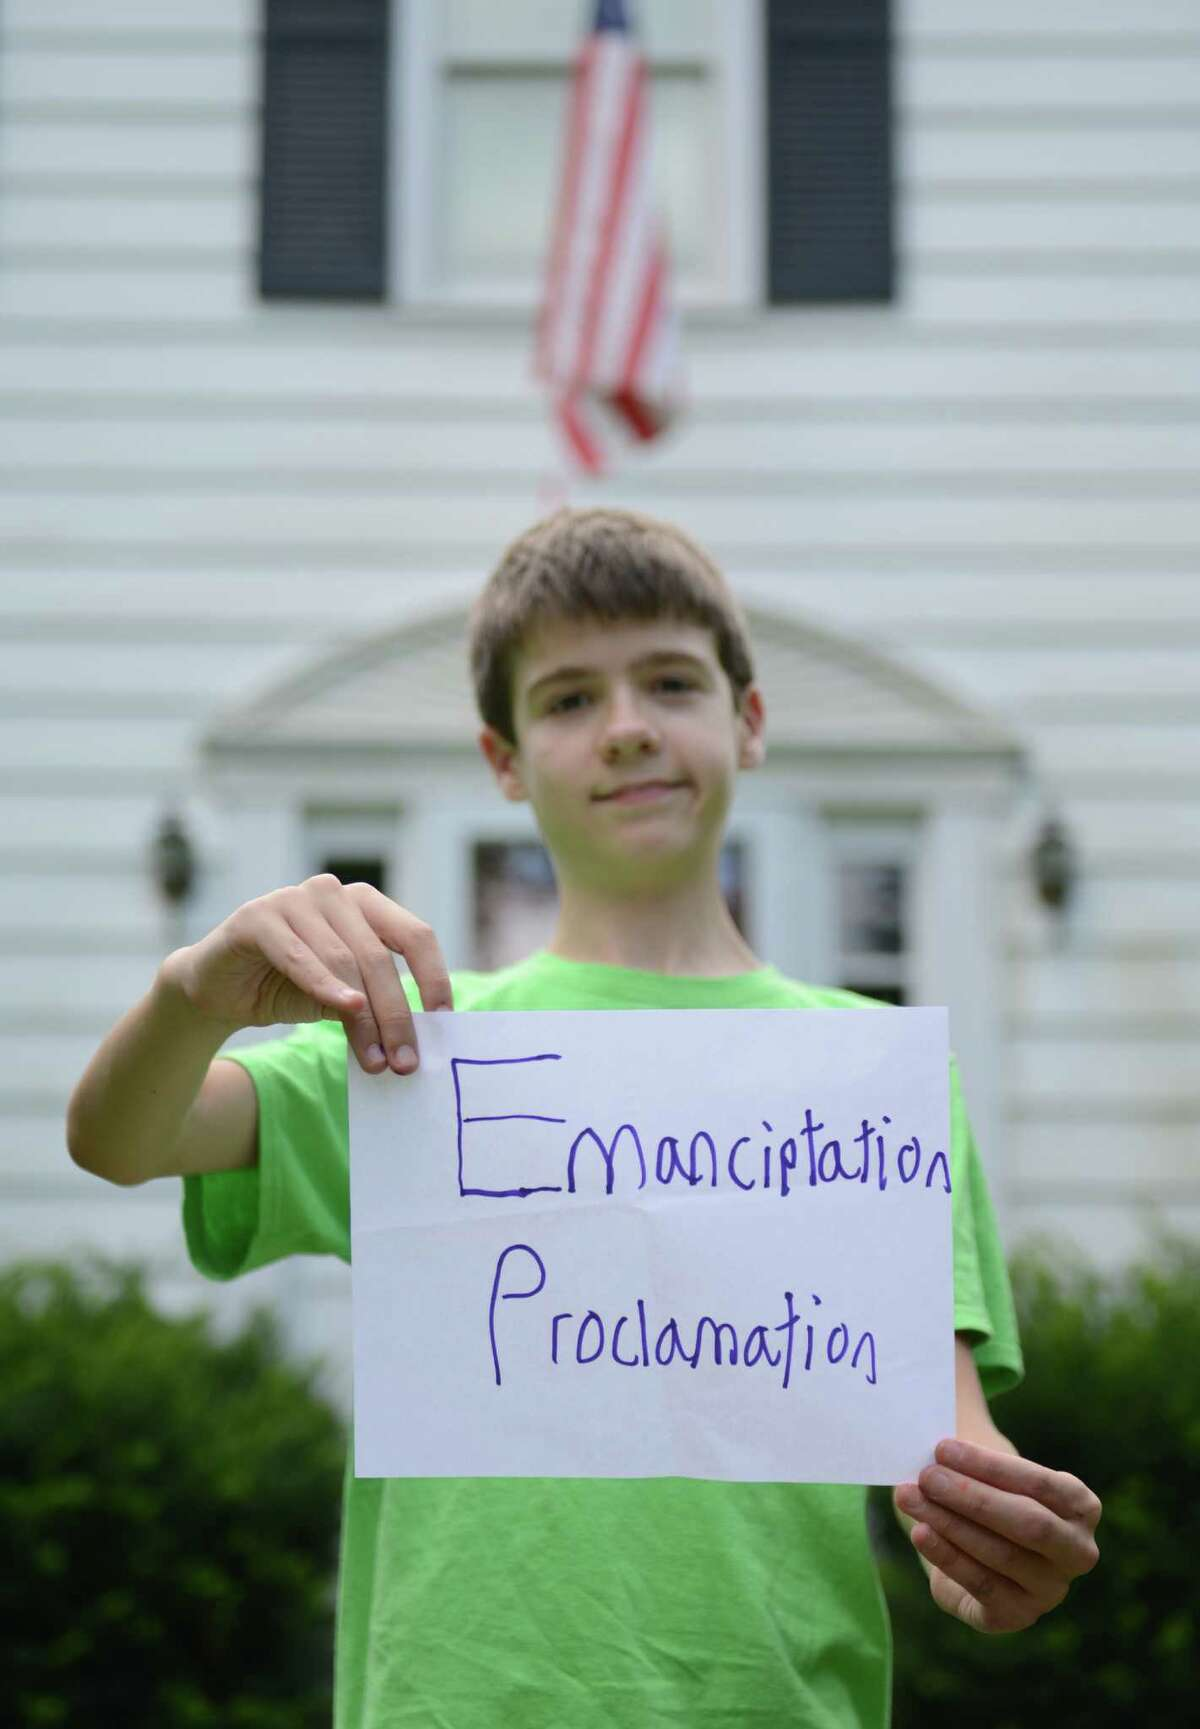 Thomas Hurley III, poses for a photo outside his home in Newtown, Conn. on Friday, August 2, 2013. The 12-year-old recently appeared on Jeopardy, spelling